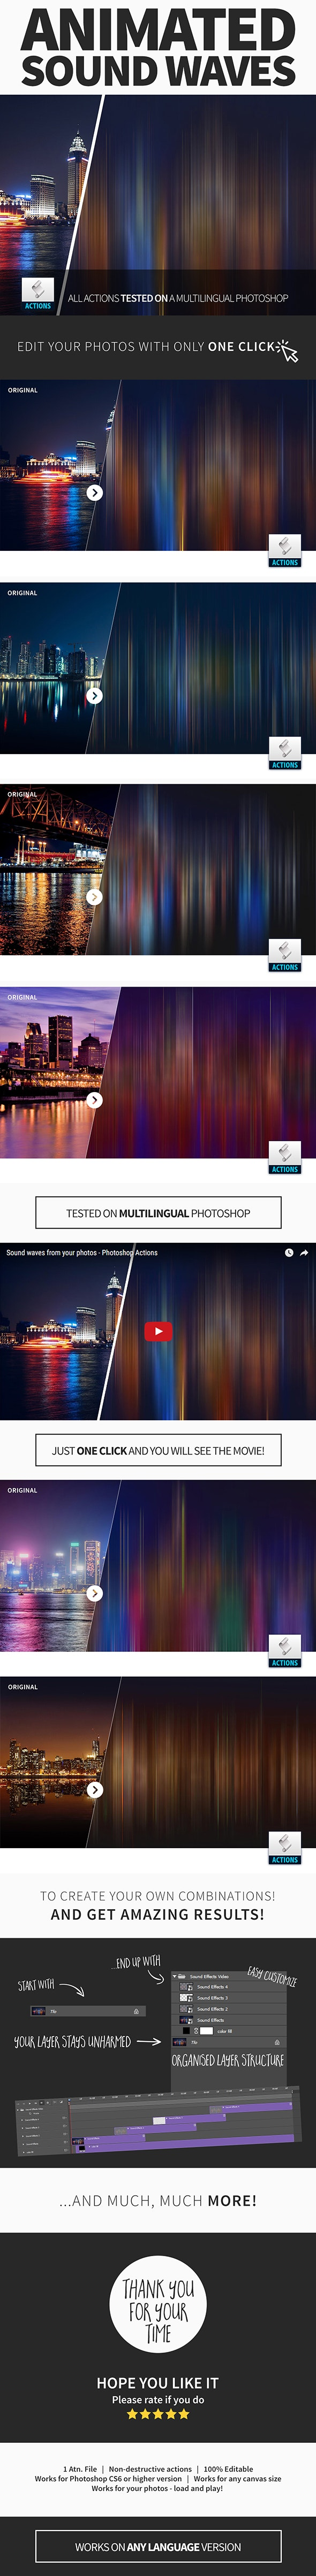 Animated Sound Waves Photoshop Action - Photo Effects Actions